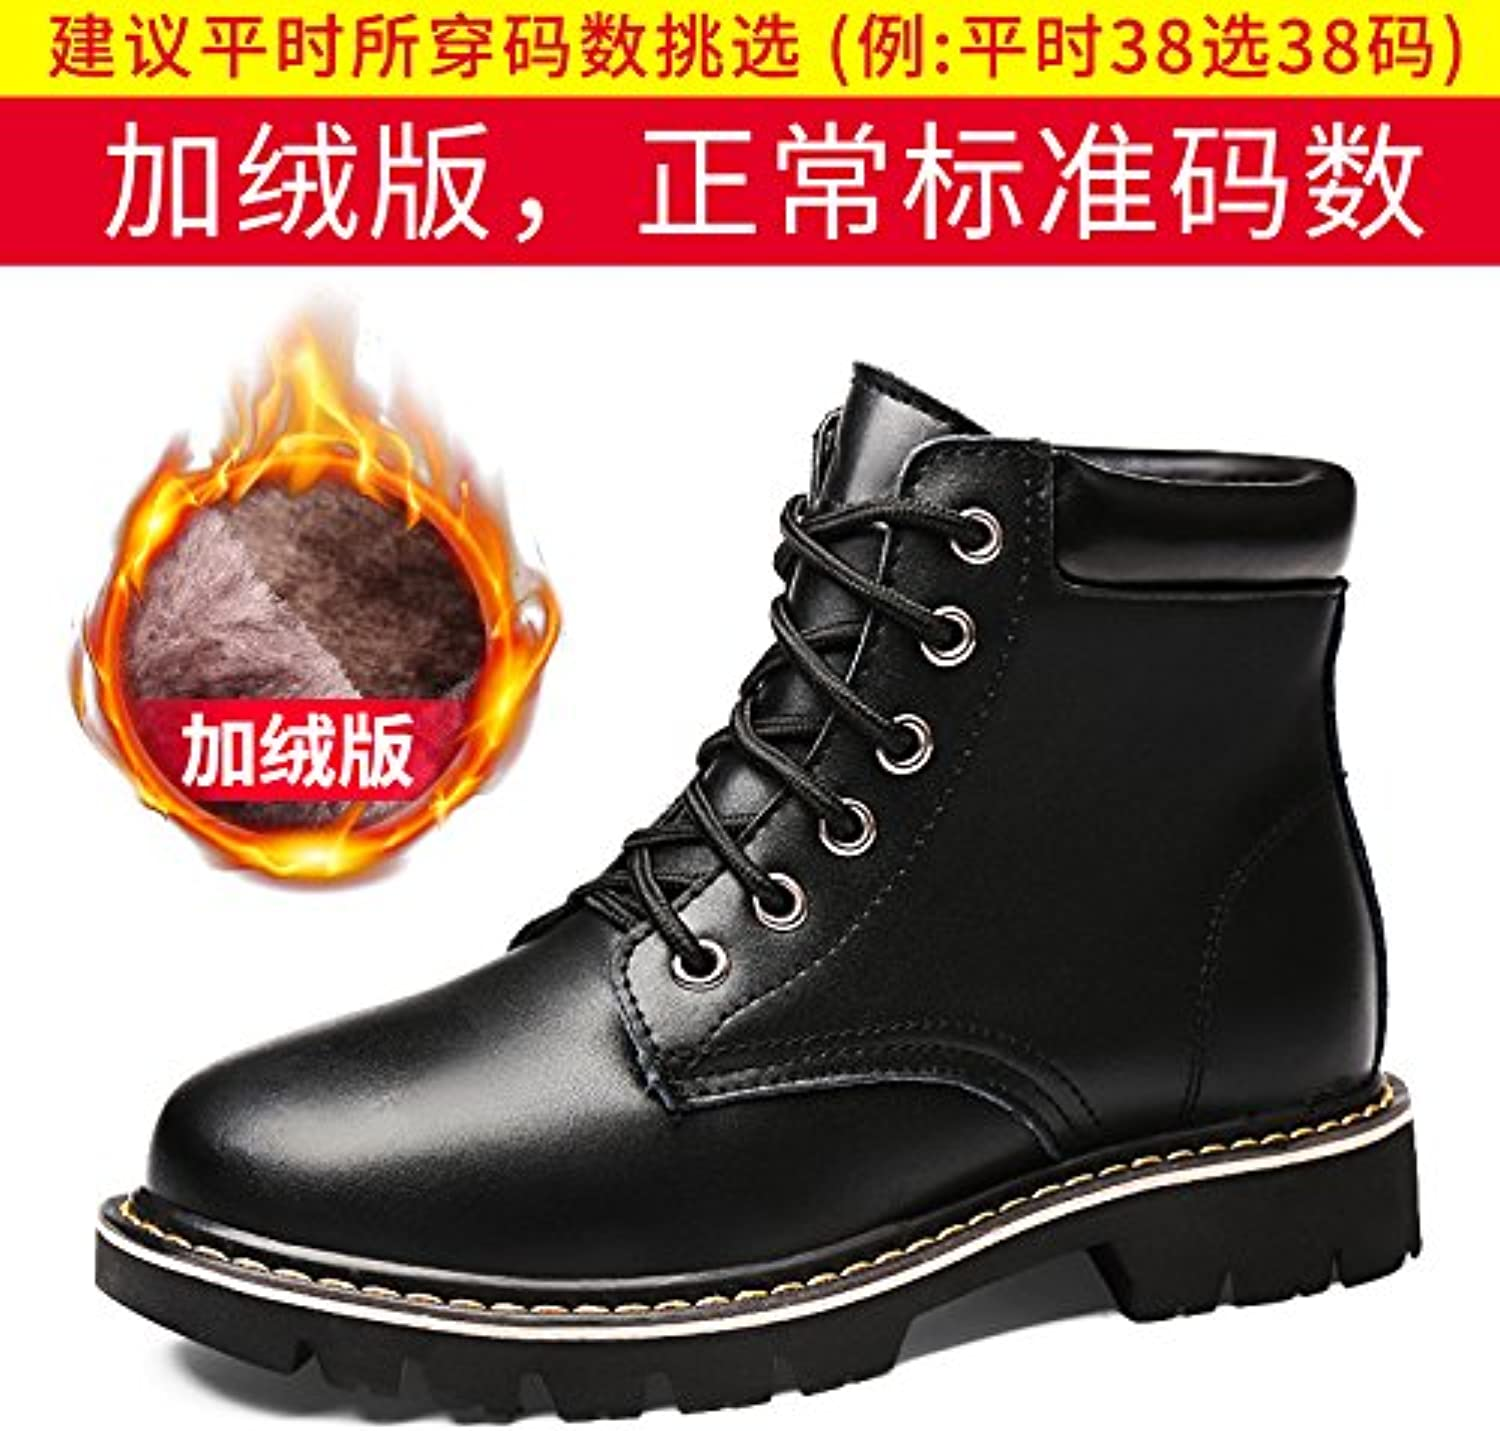 Aemember Boots The Girl With A Flat Base, With Martin Boots Female Round Head Thick With Female Boots Boots Cotton shoes Plus Cotton ,43, Black Plus Cotton